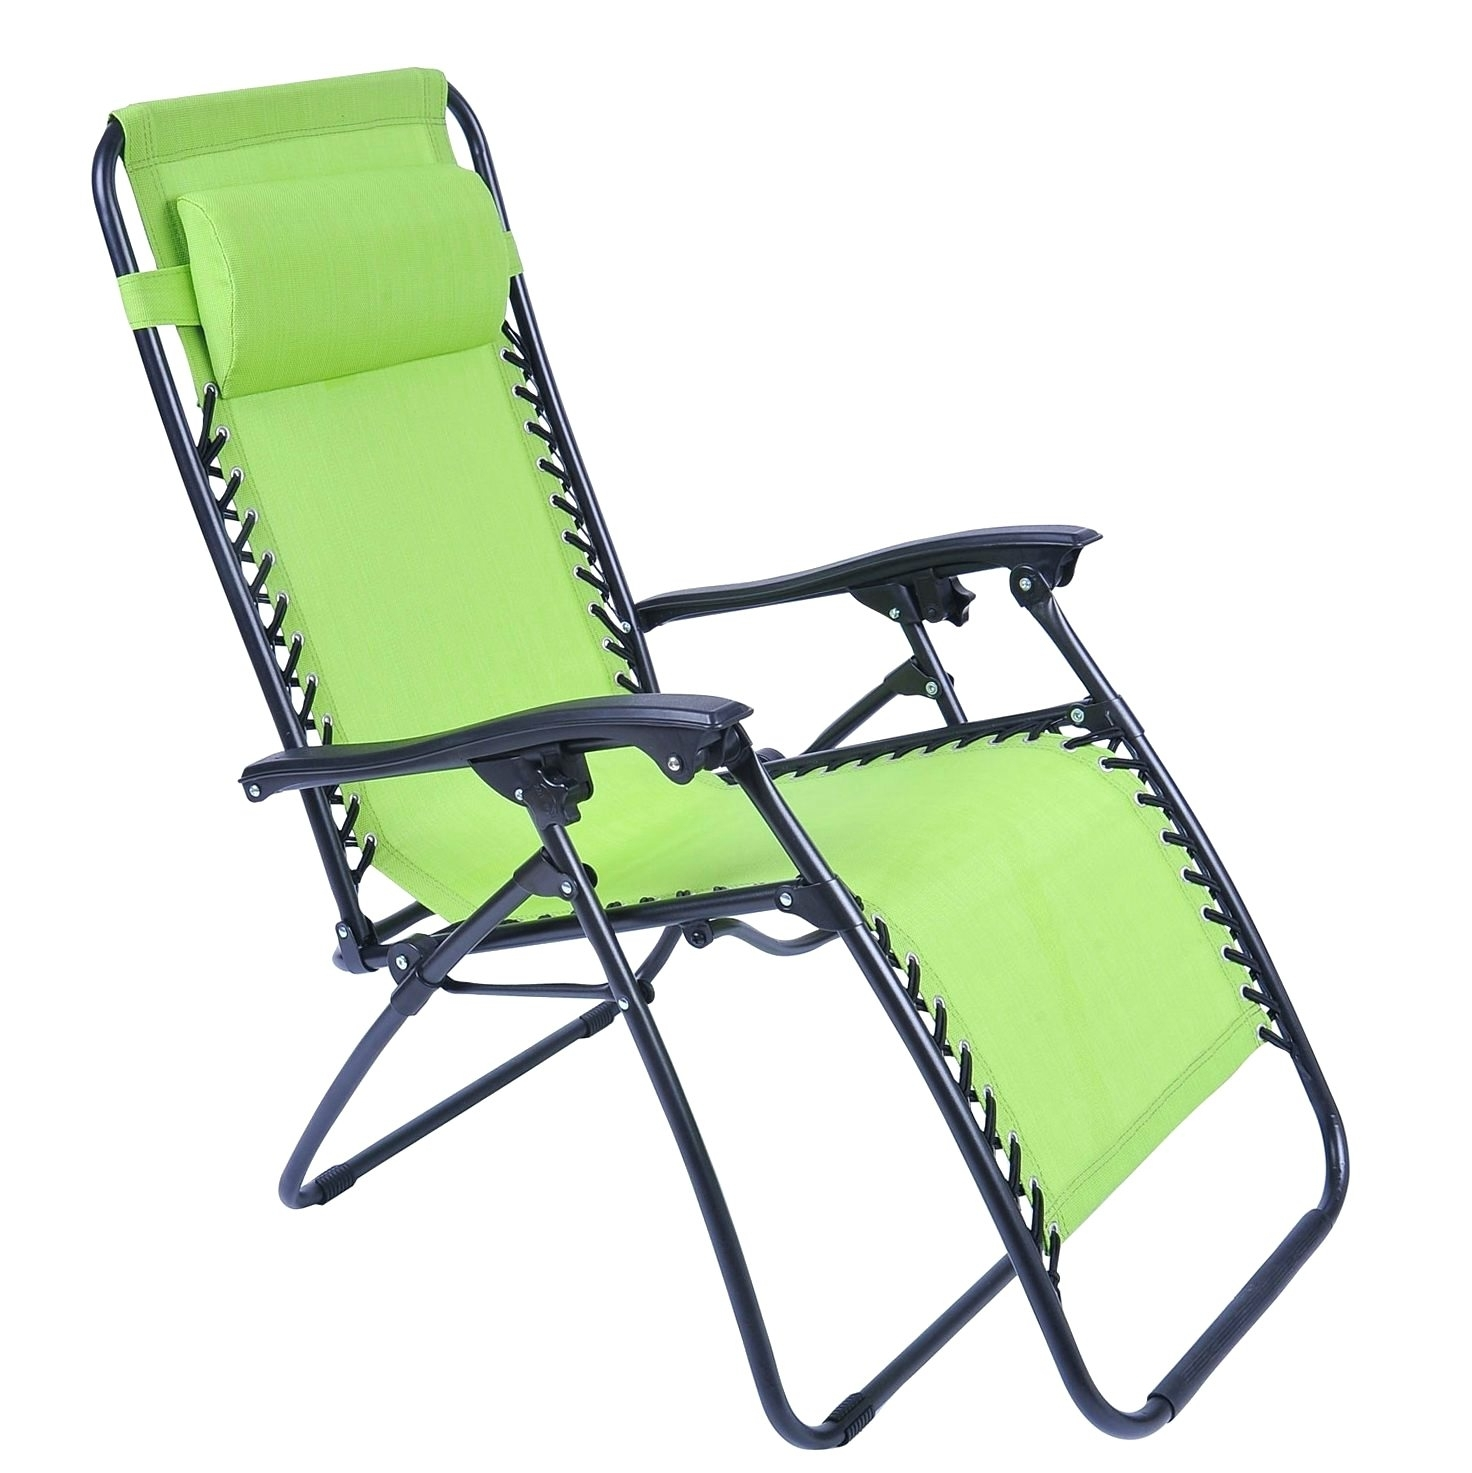 2018 Chaise Lounge Outdoor Furniture Boca Chaise Lounge Chair Outdoor Intended For Boca Chaise Lounge Outdoor Chairs With Pillows (View 1 of 15)